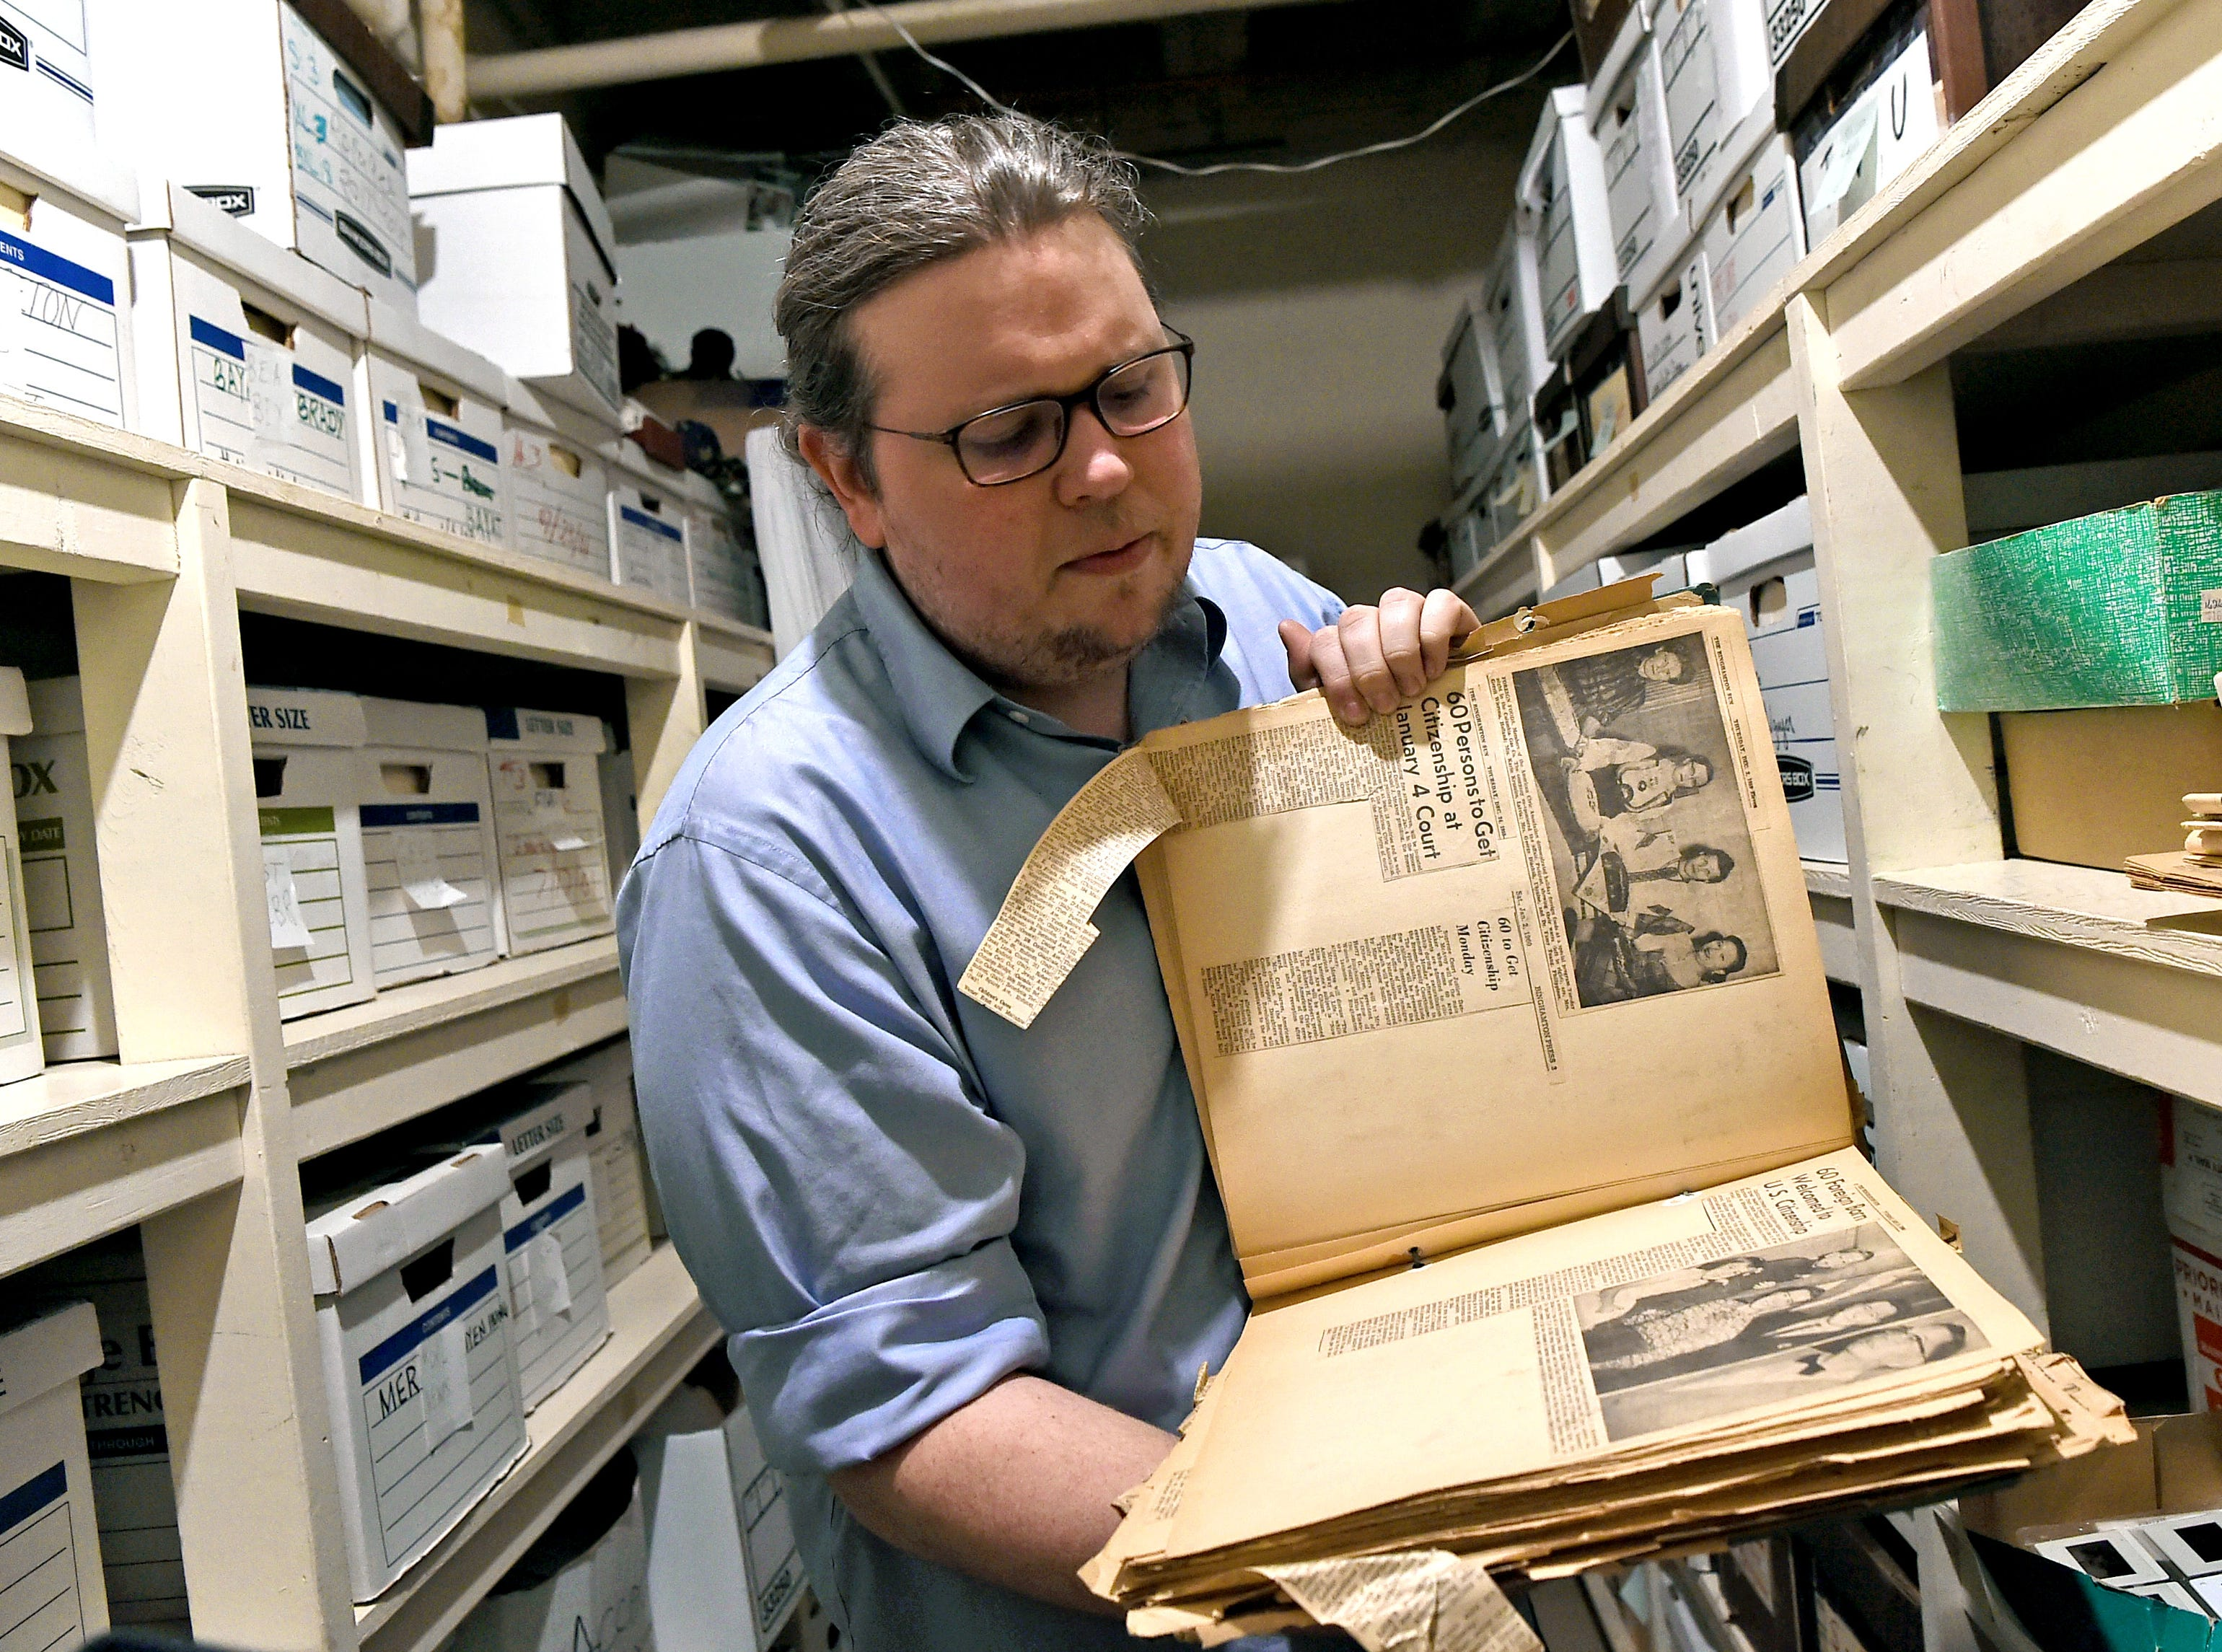 American Civic Association board member Bradley Hutchinson serves as the archivist of the American Civic Association in Binghamton. Among the first immigrants the ACA helped resettle were displaced Europeans fleeing war.